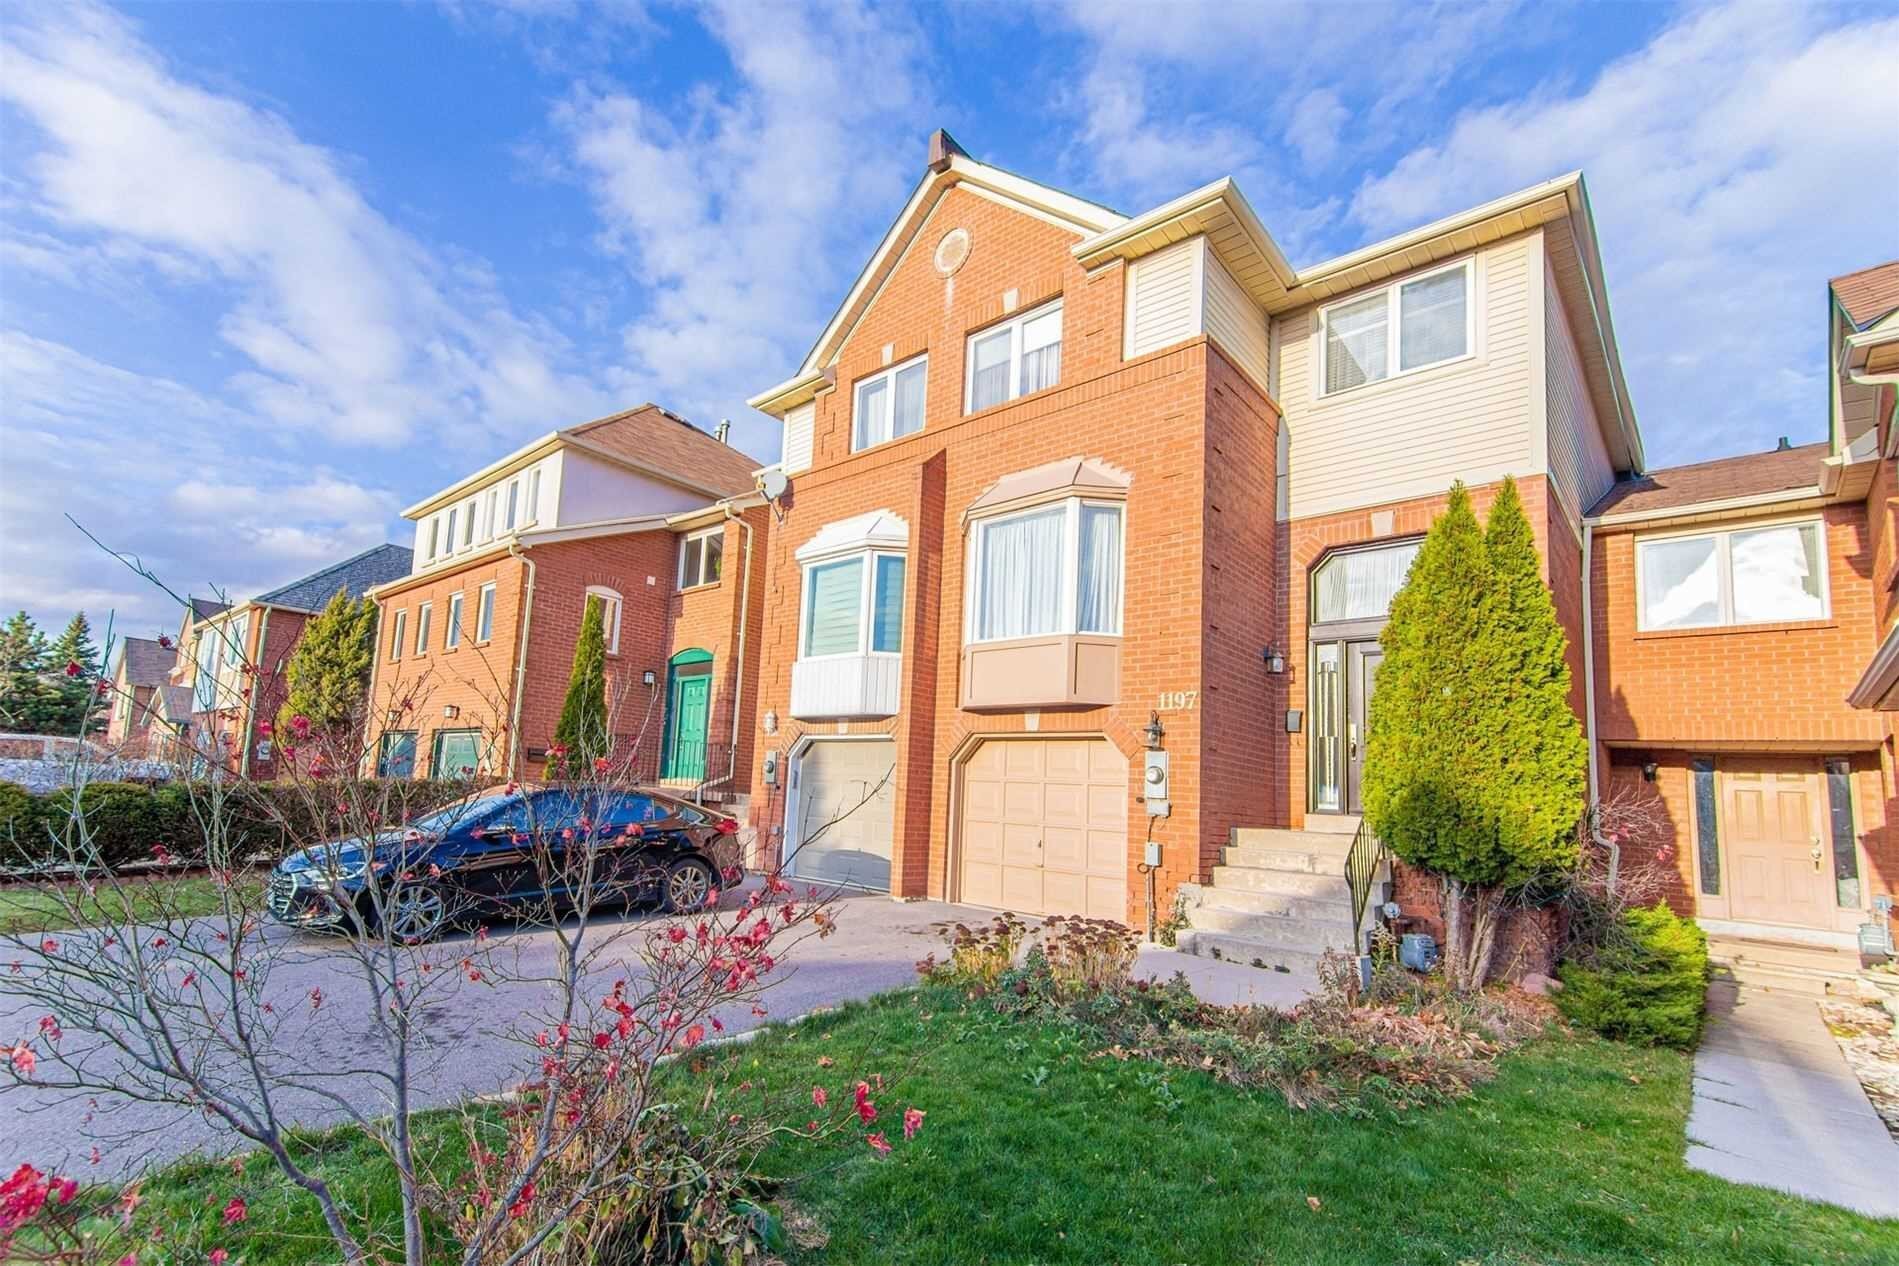 Townhouse for sale at 1197 Leewood Dr Oakville Ontario - MLS: W4964705